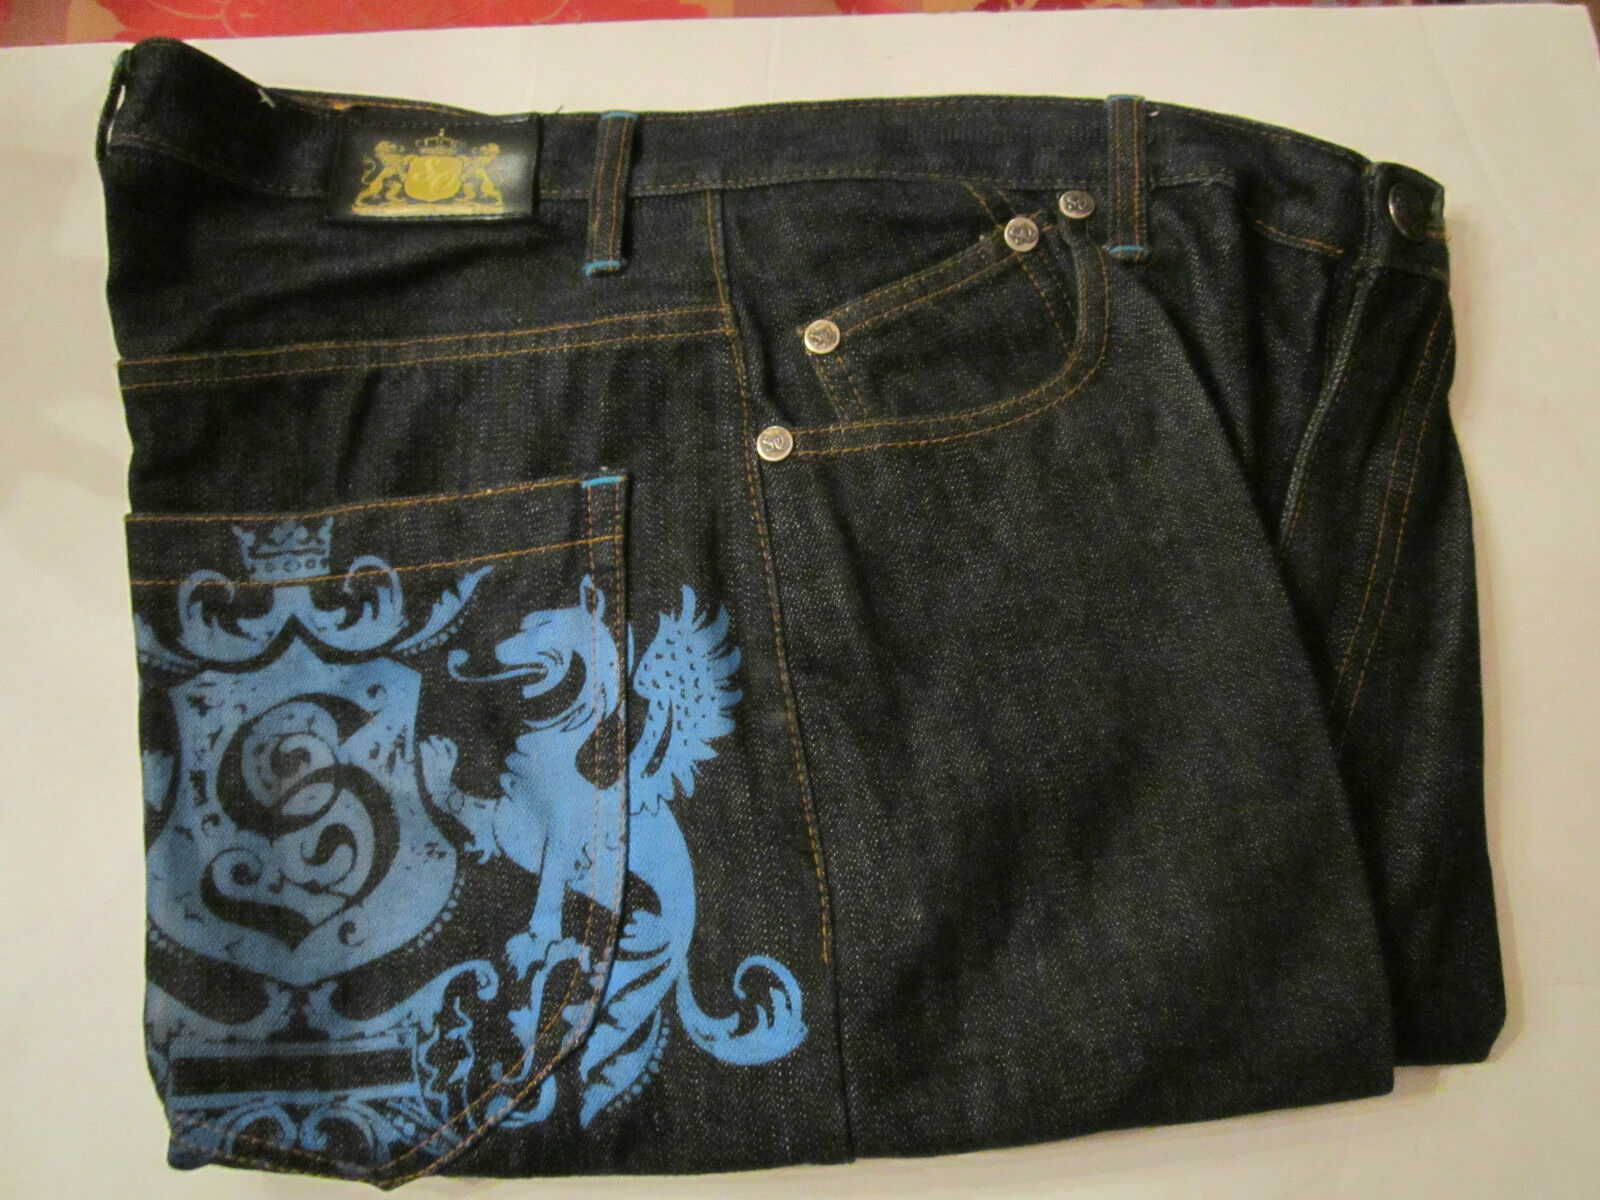 SACRED CULT JEANS WITH ALOT OF EMBROIDERY SIZE 38 X 32 100% COTTON IN EXCEL COND